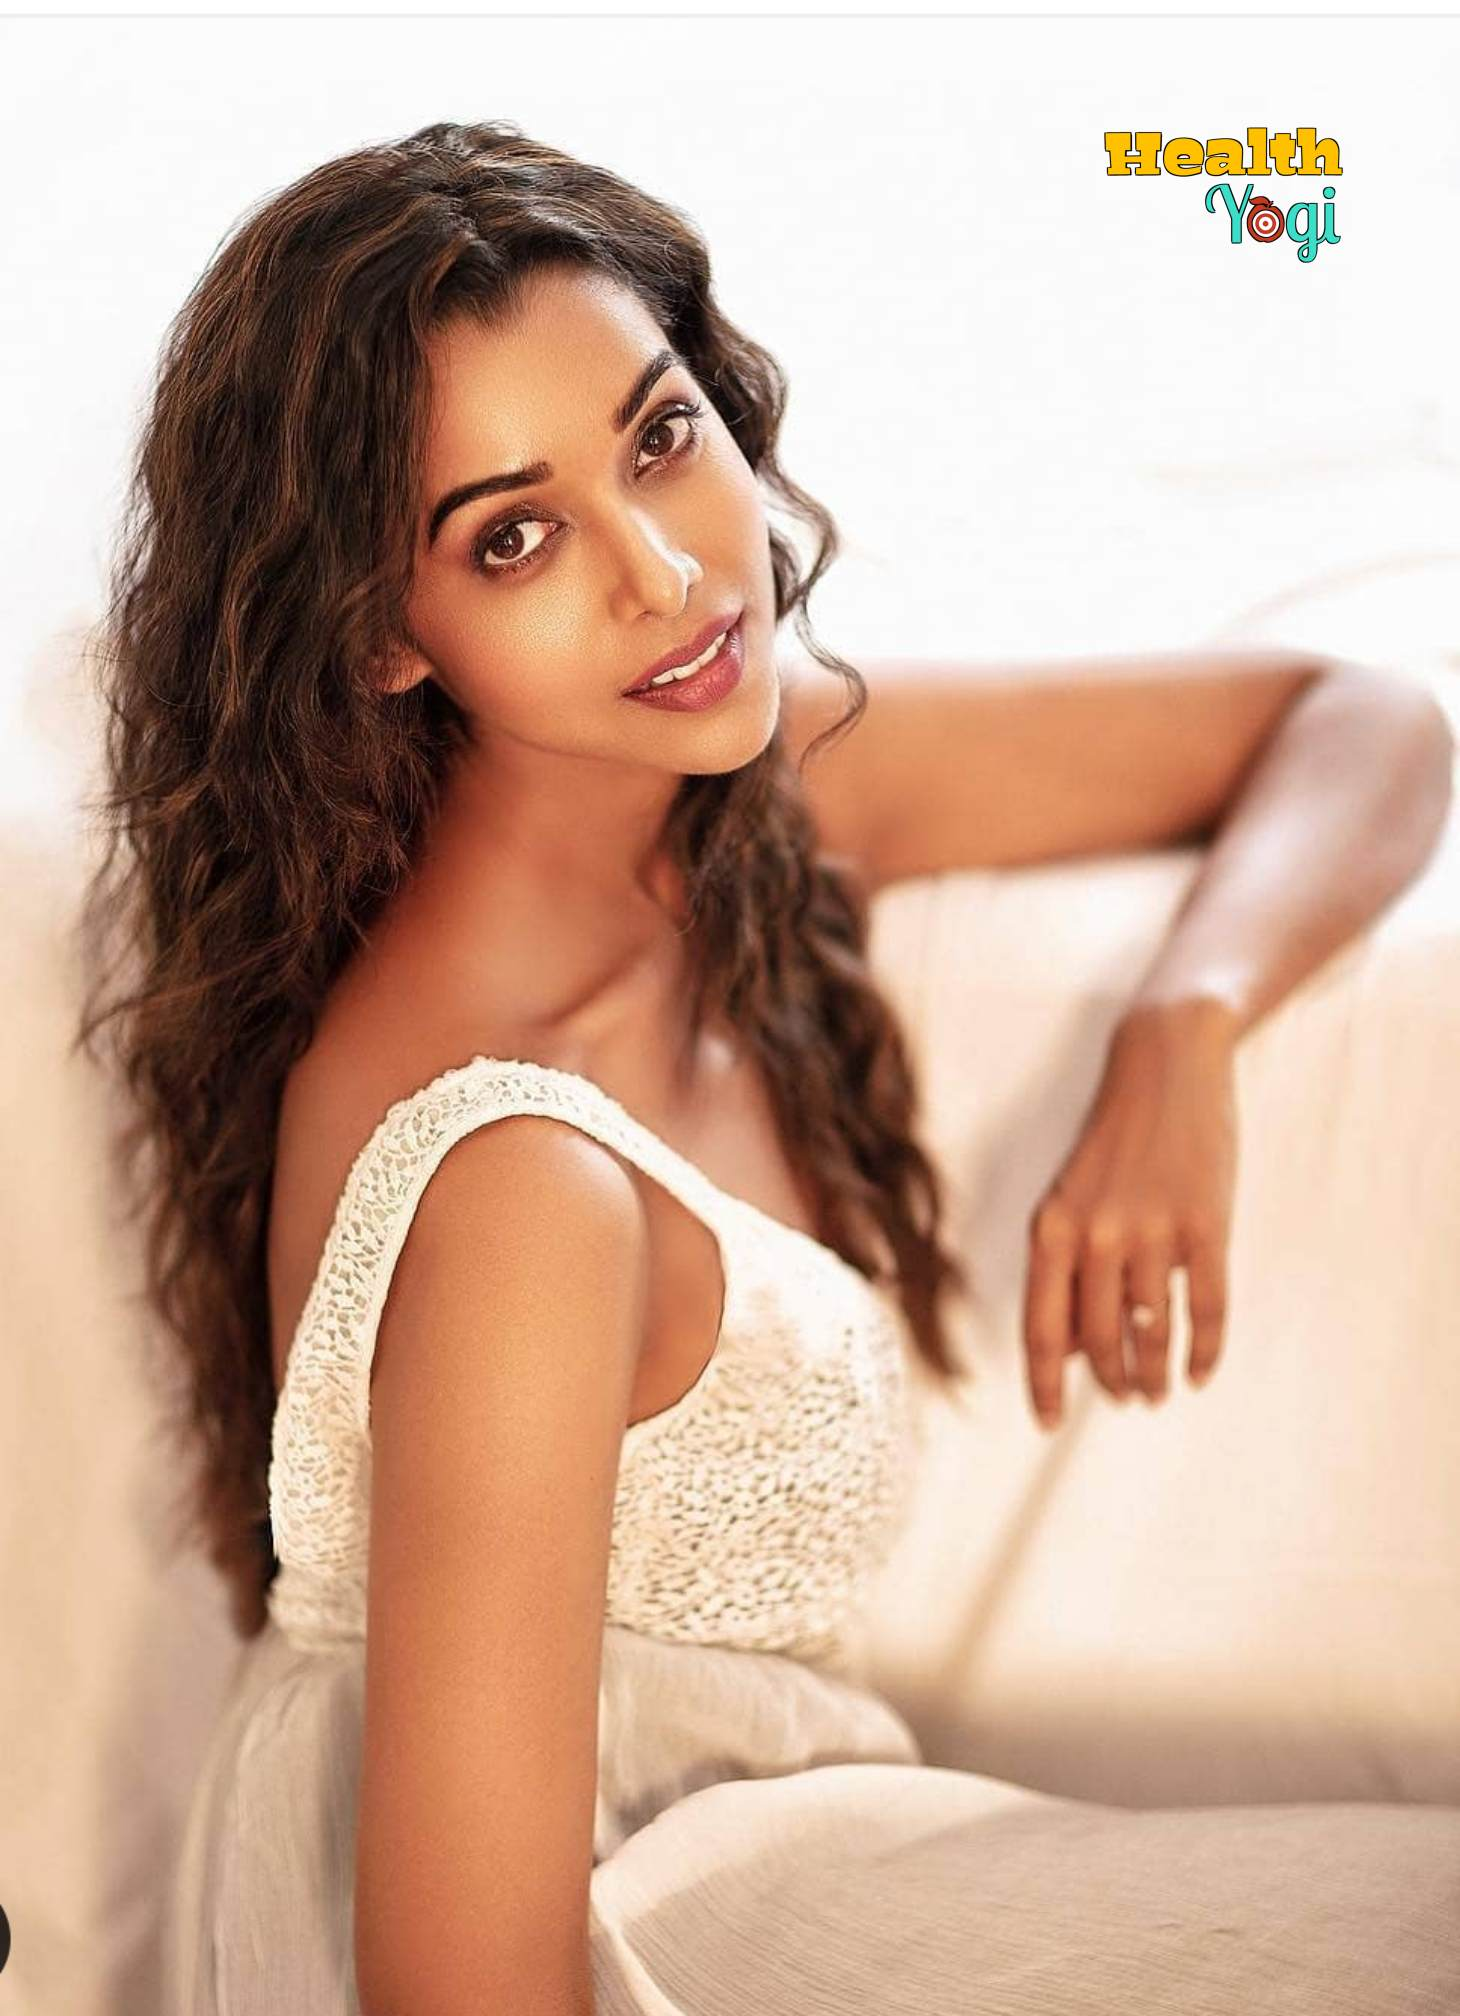 Anupriya Goenka diet plan, workout routine and beauty secrets